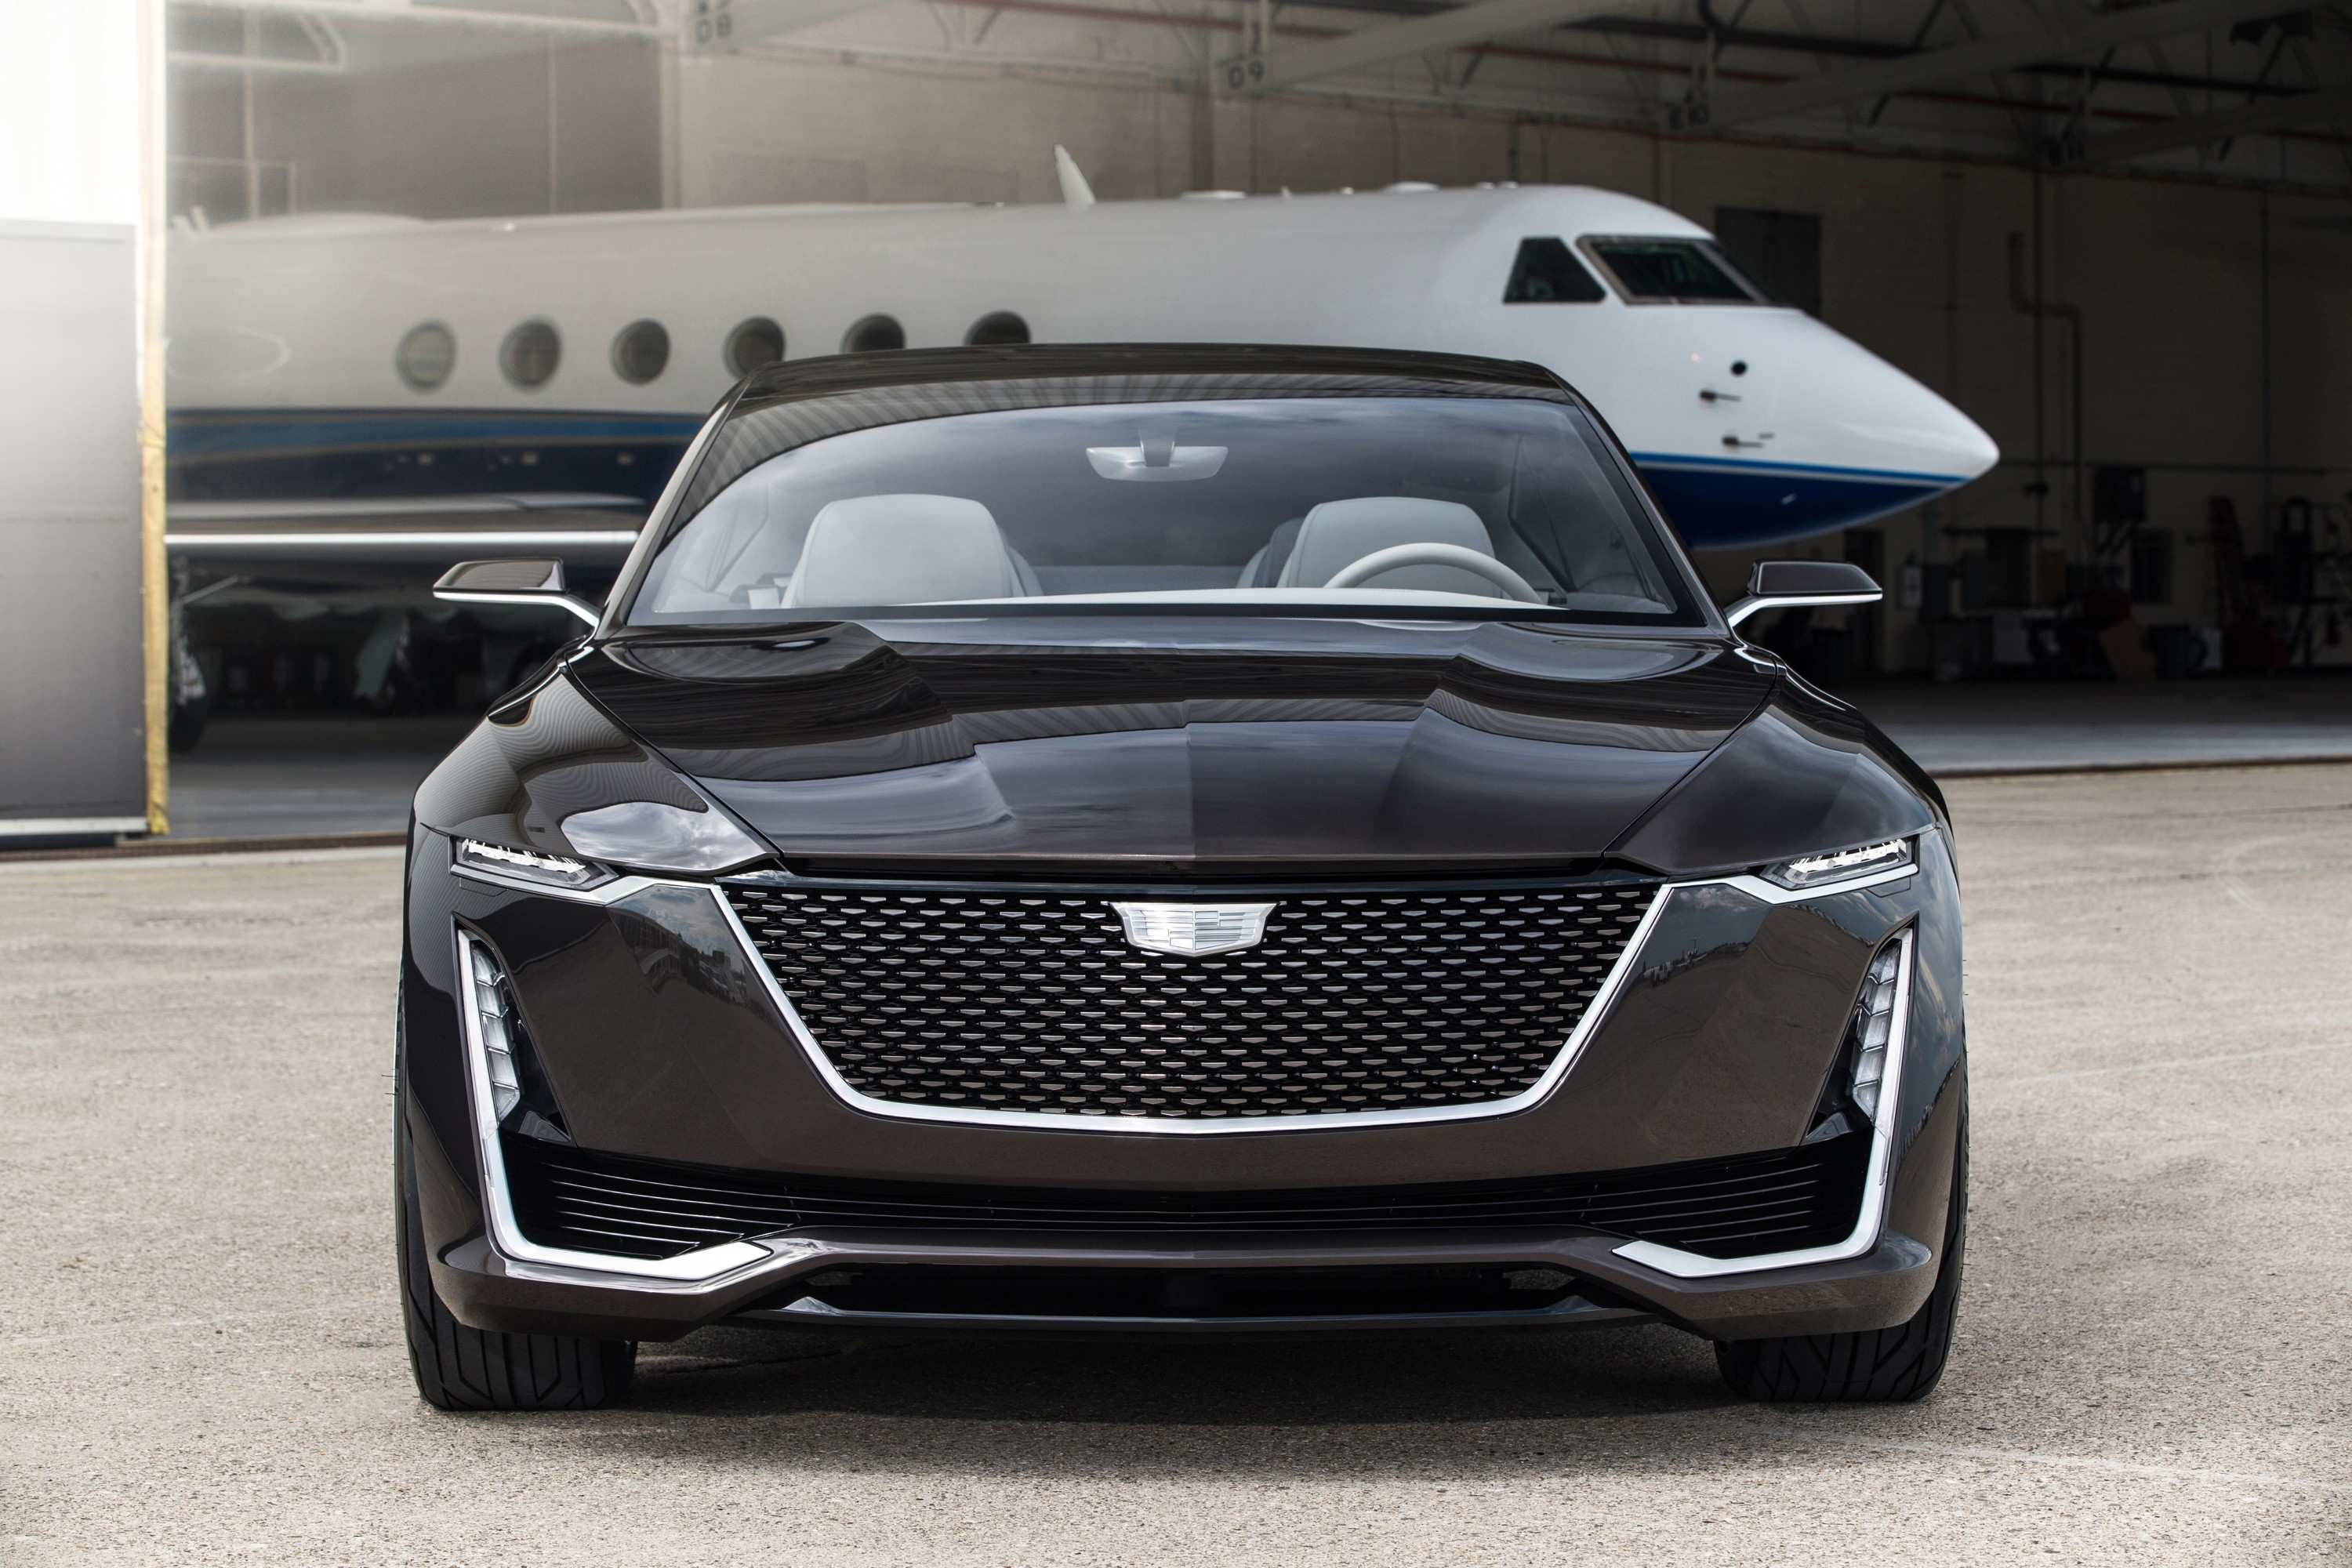 36 Best Review 2020 Cadillac Cts New Concept by 2020 Cadillac Cts